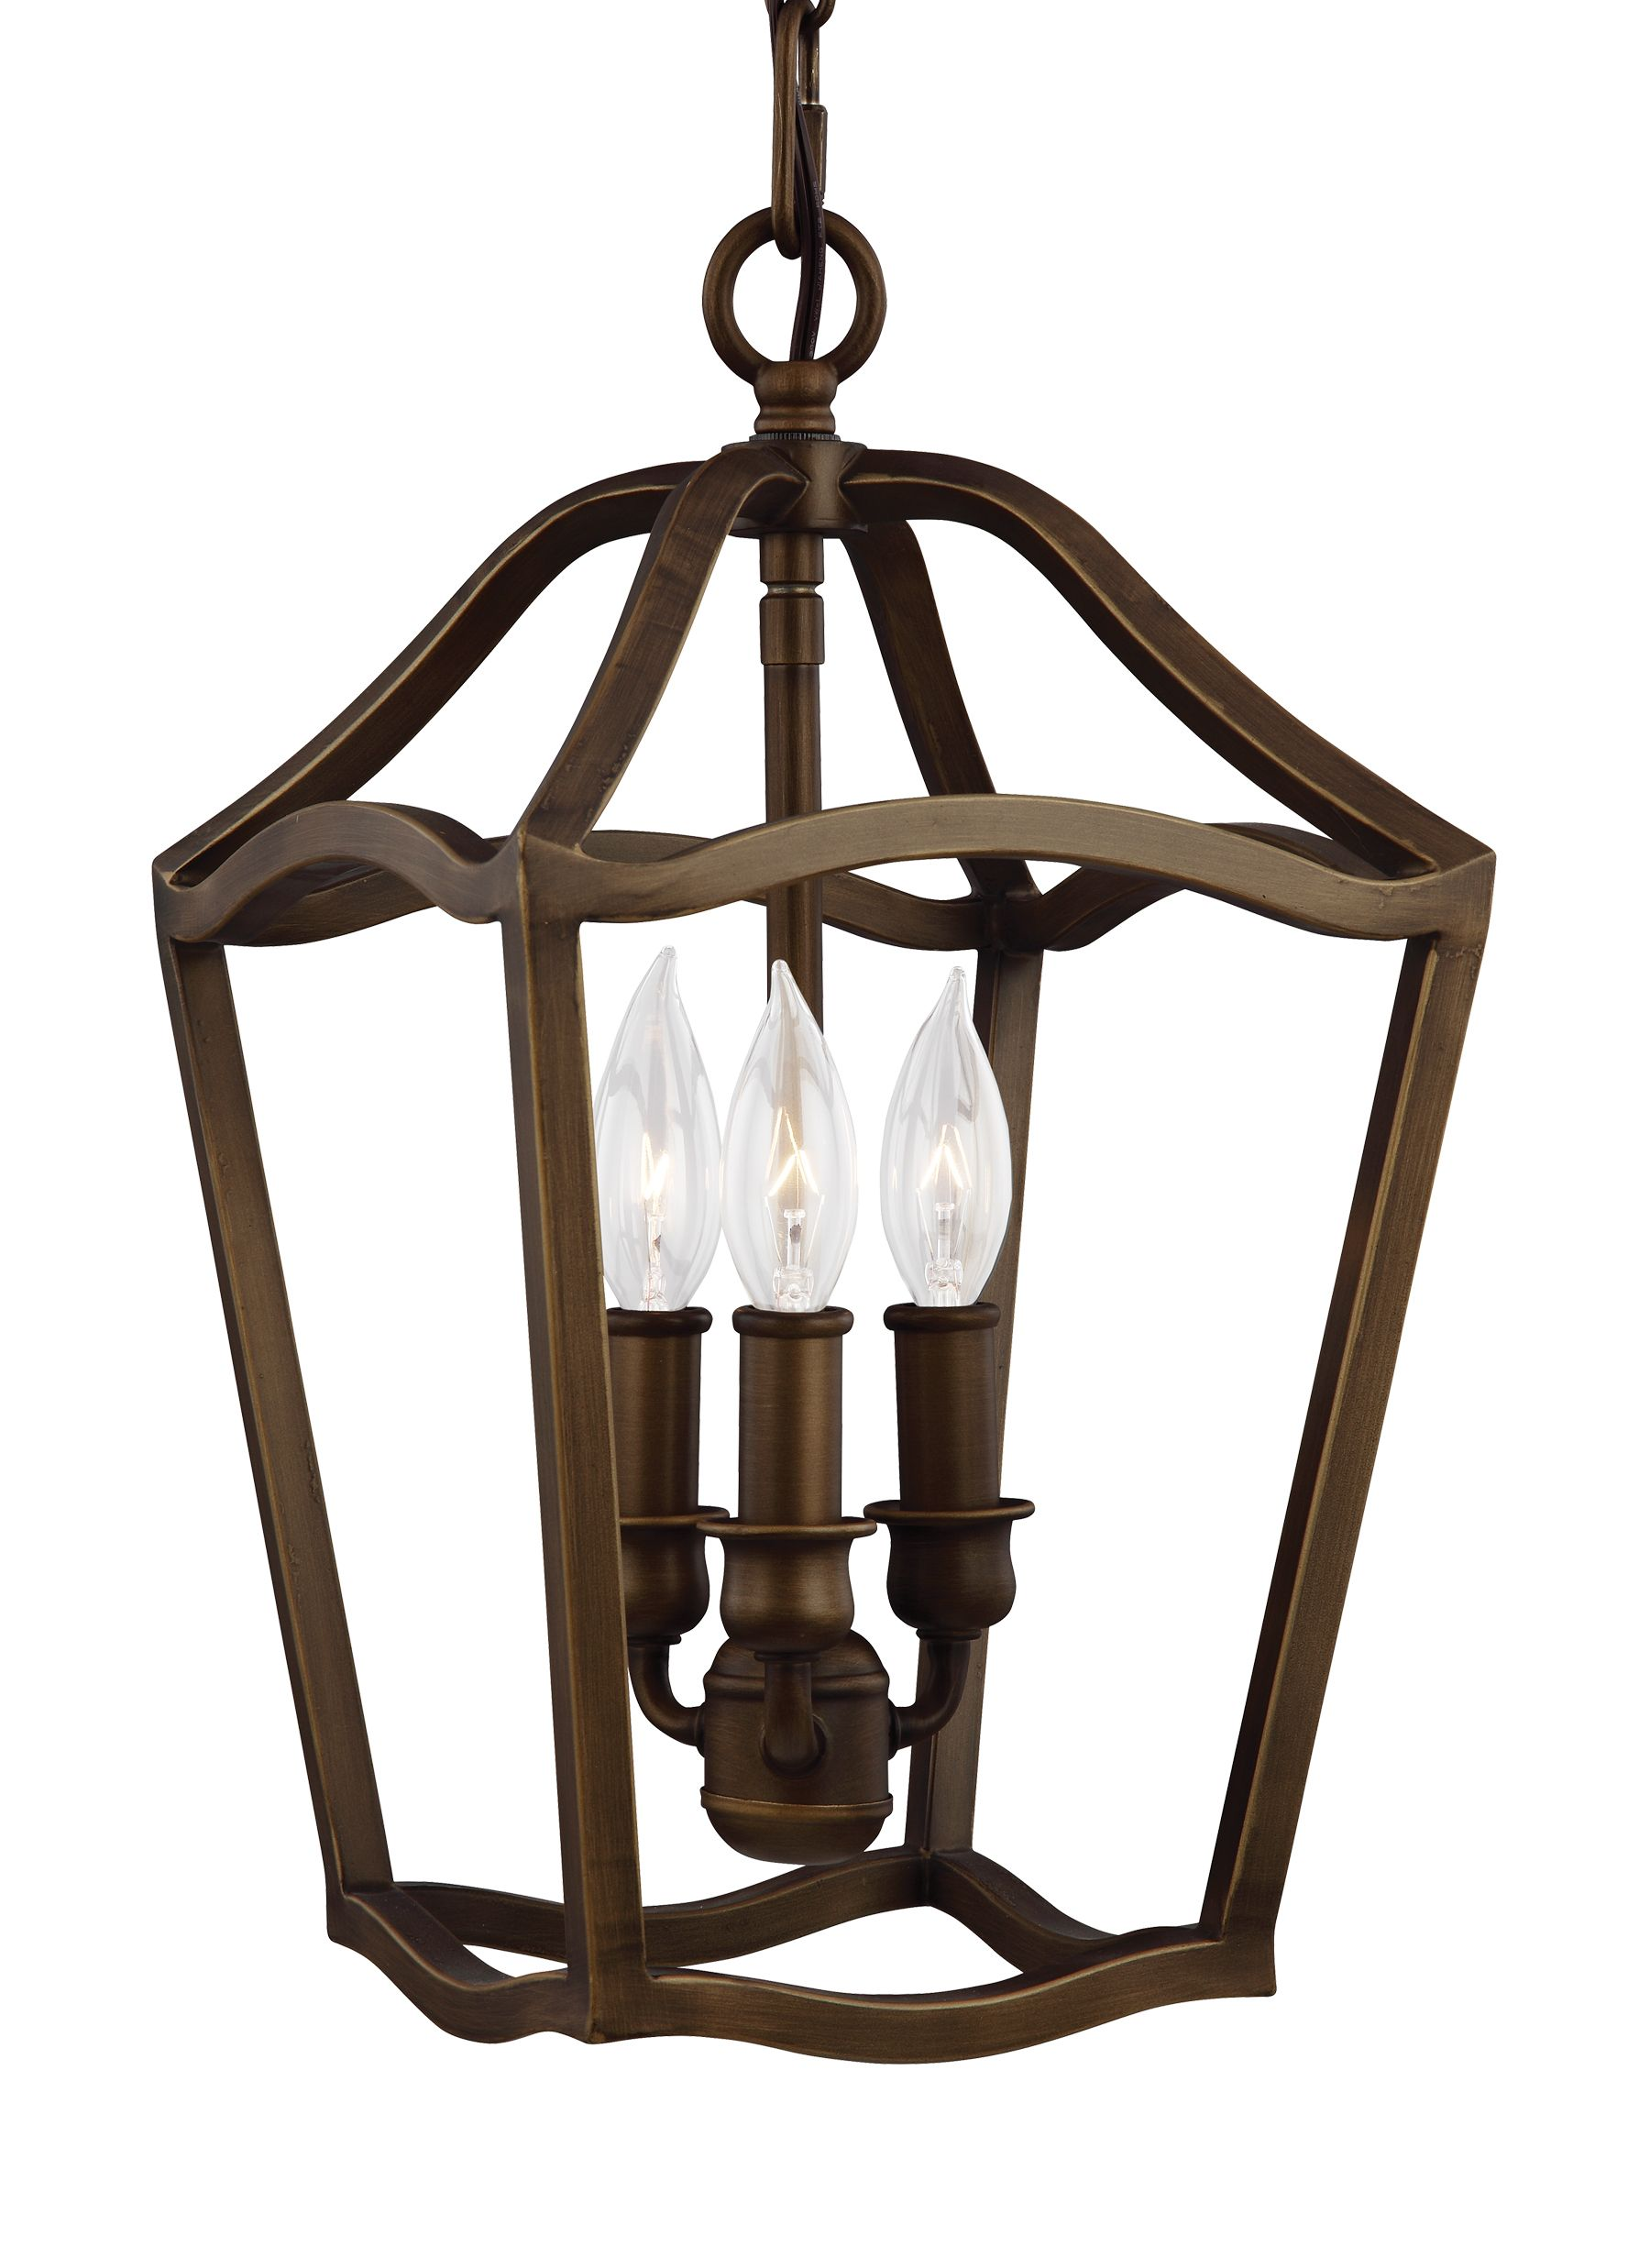 F2974/3PAGB,3 - Light Foyer,Painted Aged Brass